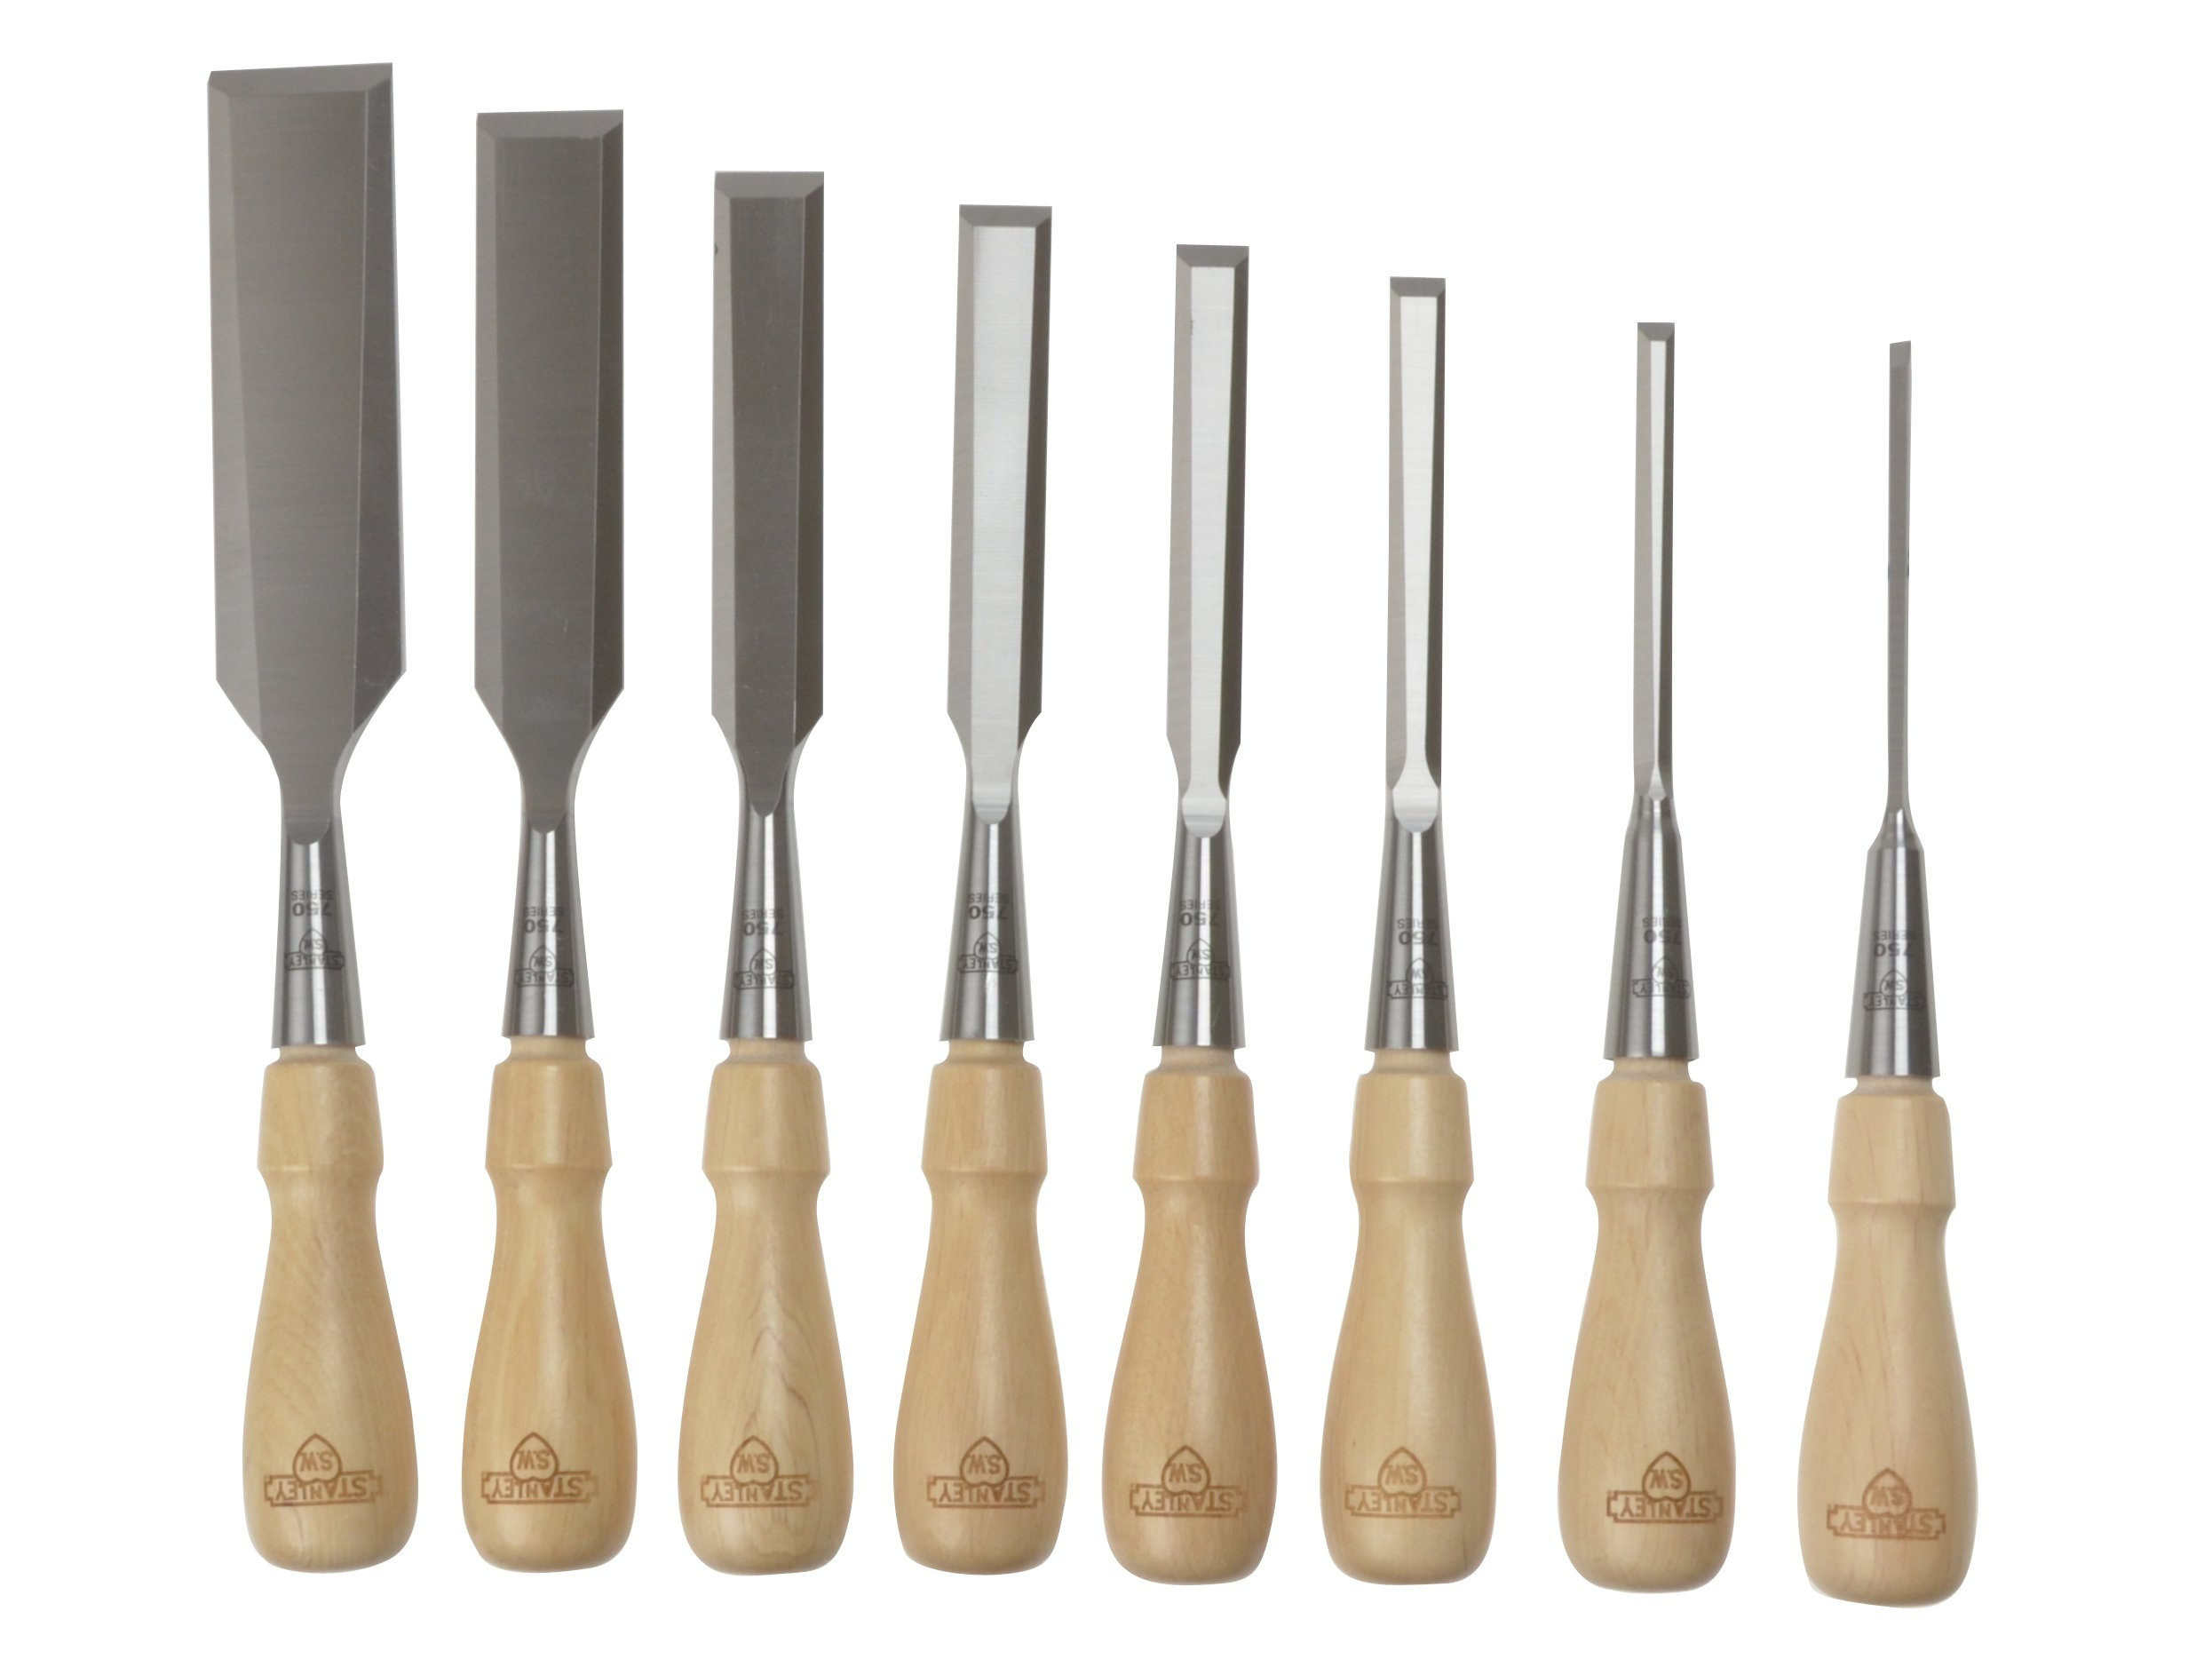 Stanley 1-16-793 Chisel-Set Sweetheart (8-piece), Silver/Tan Brown